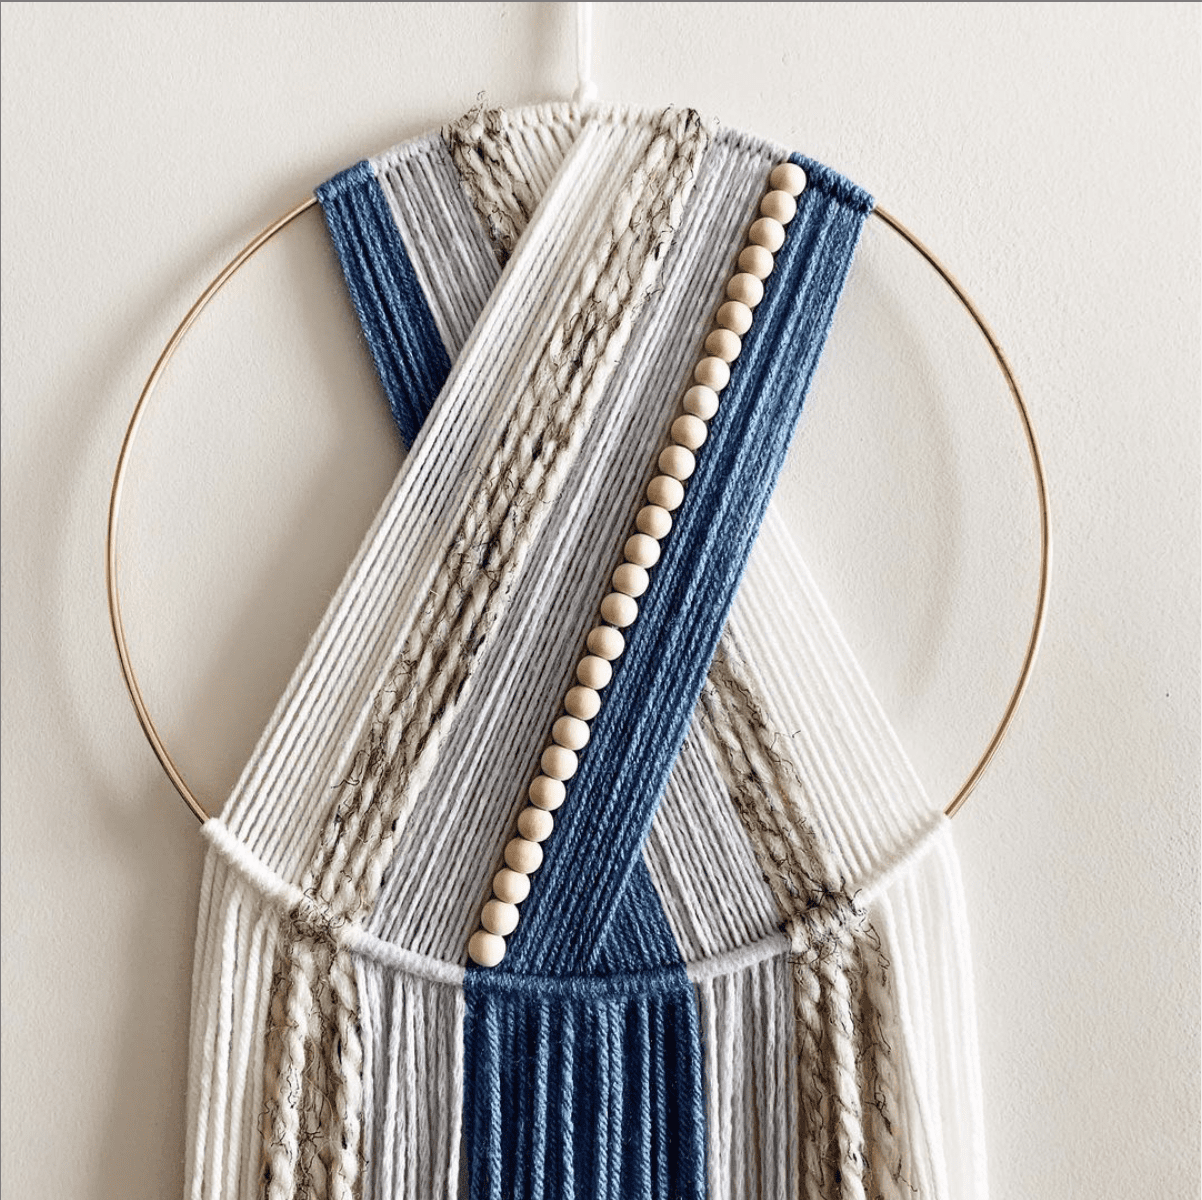 Wall Hanging from The Twisted Thread Co.